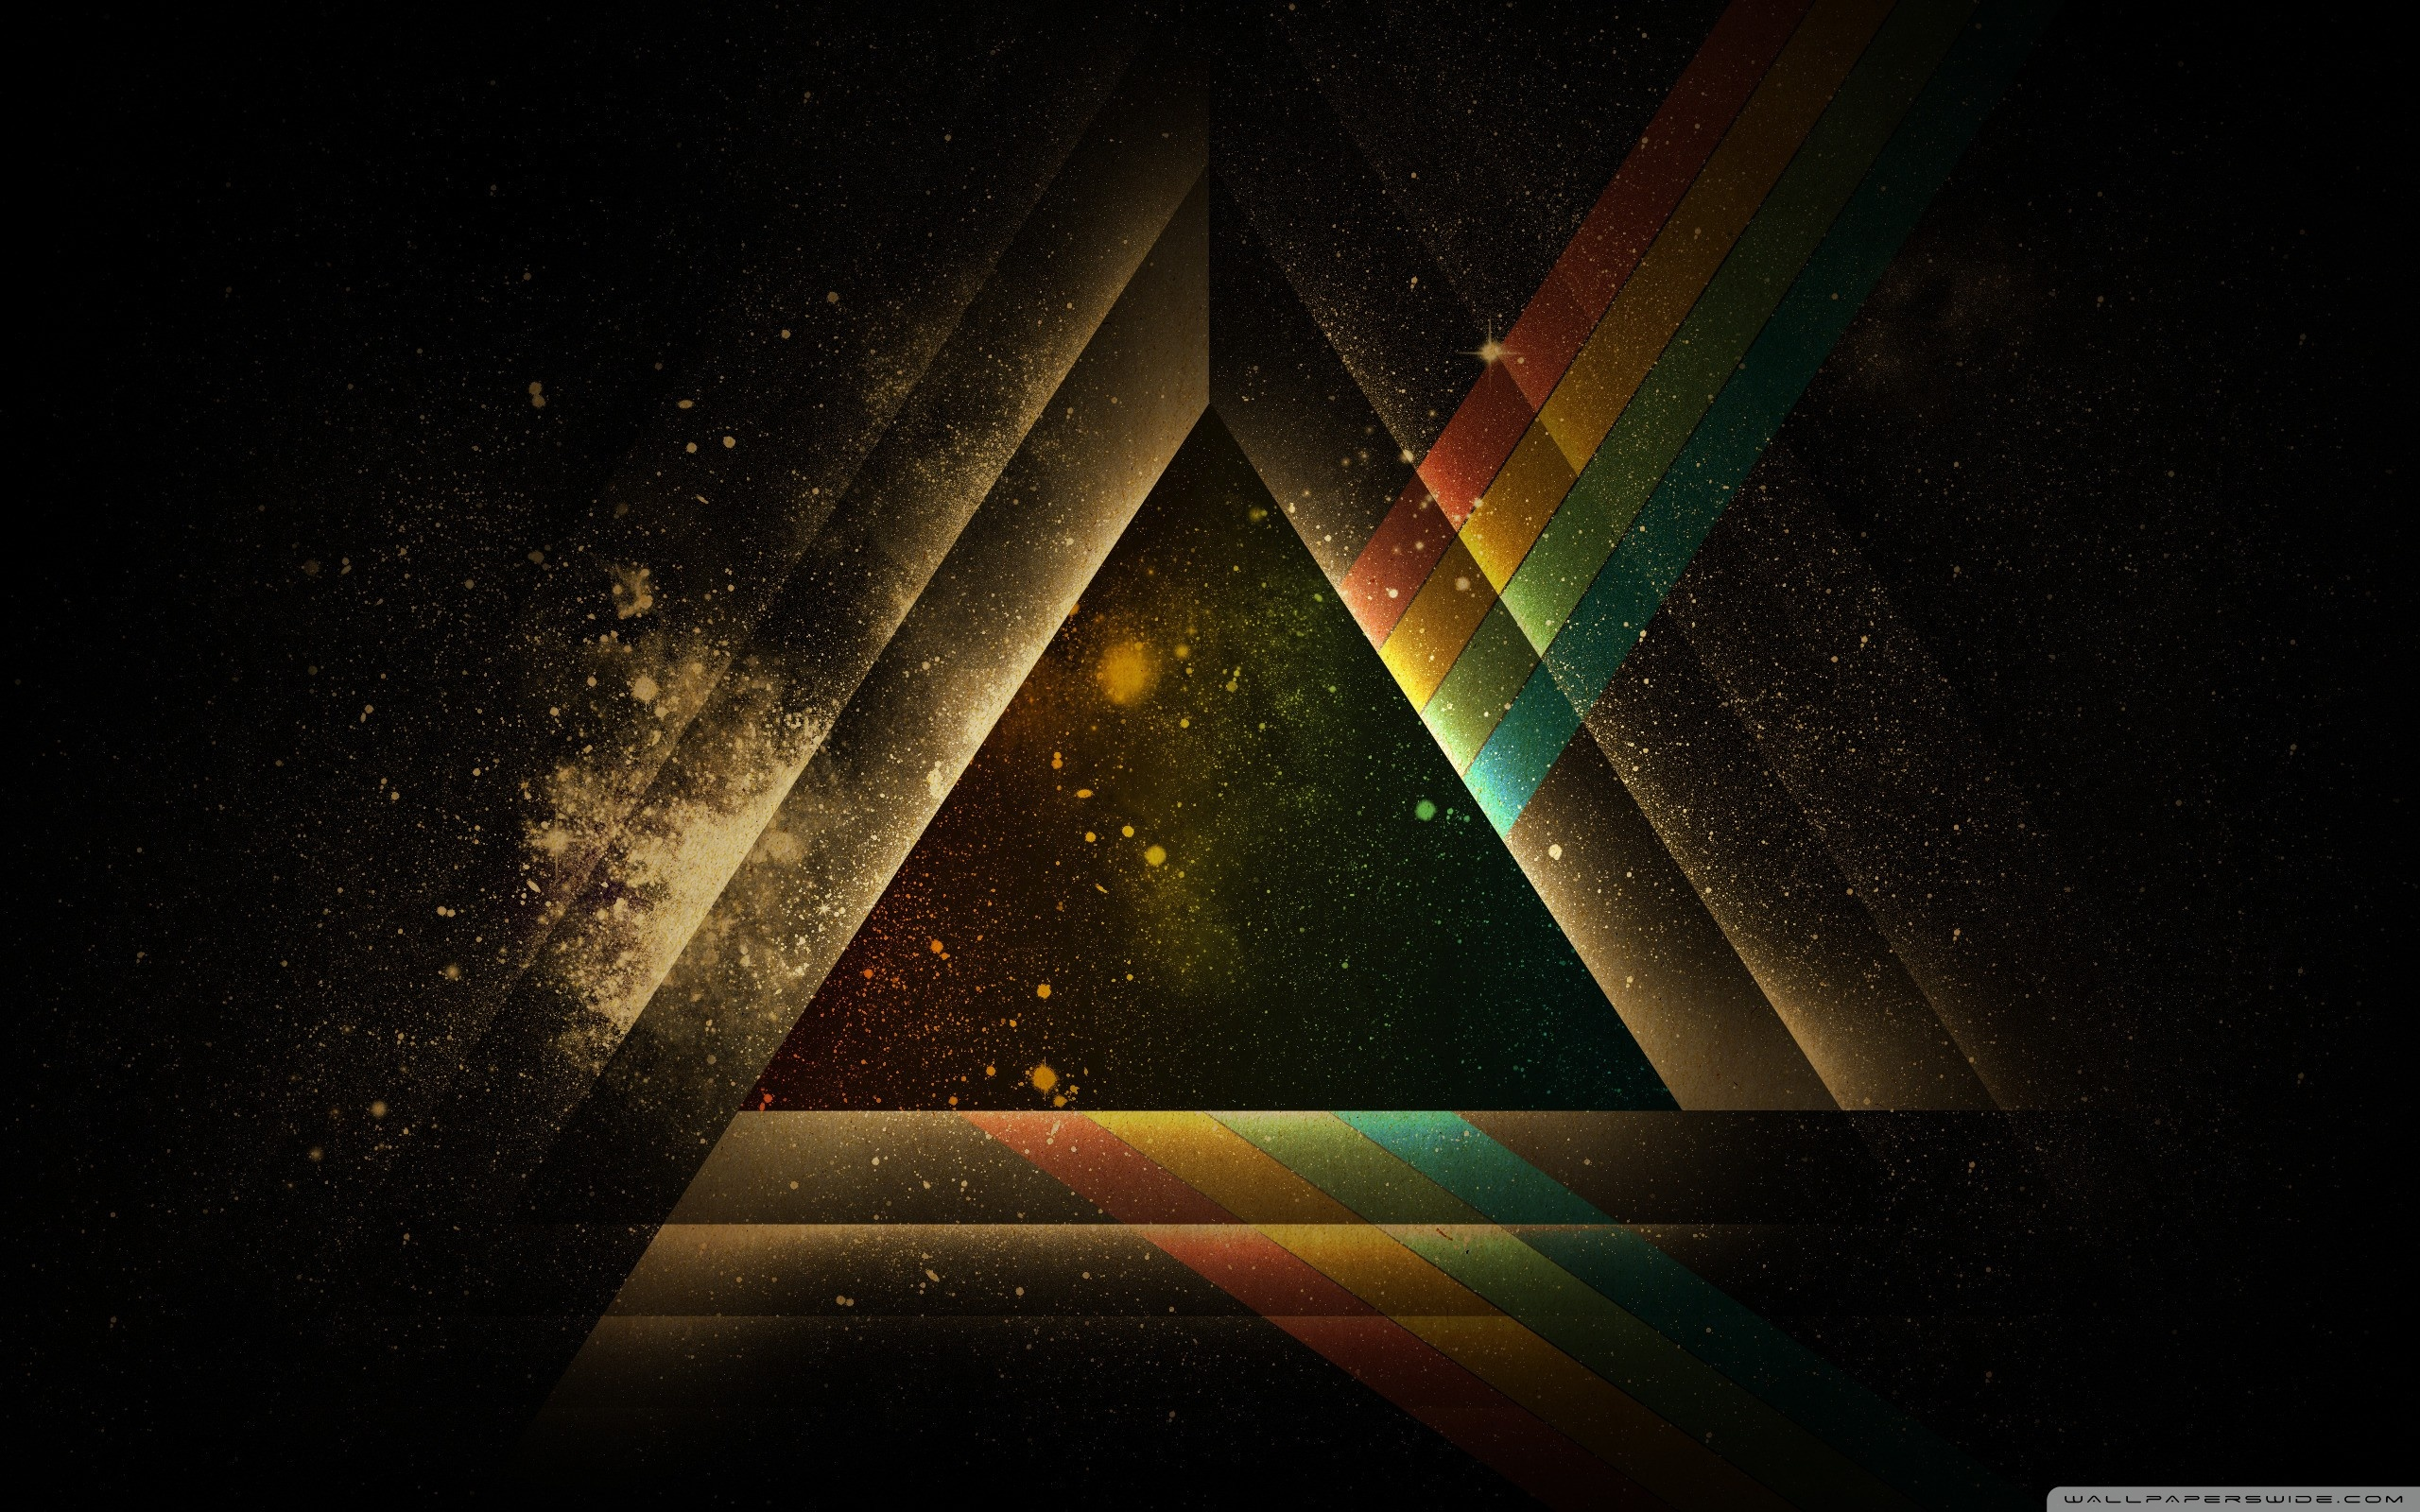 triangle 2-wallpaper-2560x1600 wallpaper | 2560x1600 | 231731